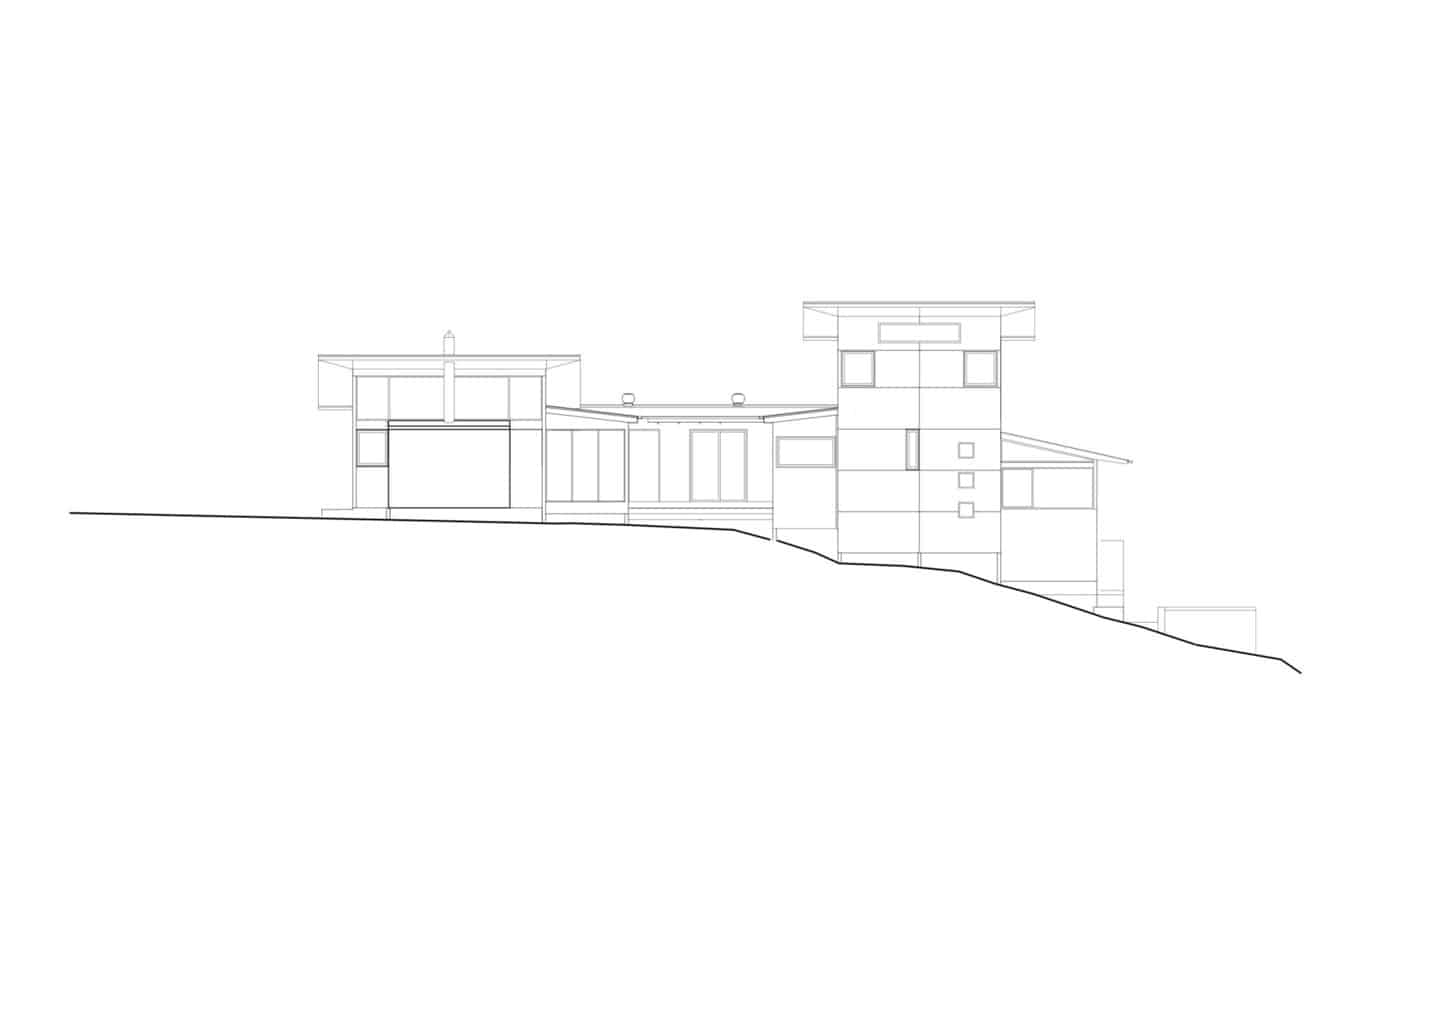 north elevation sketch of bourne blue boomerang beach architecture